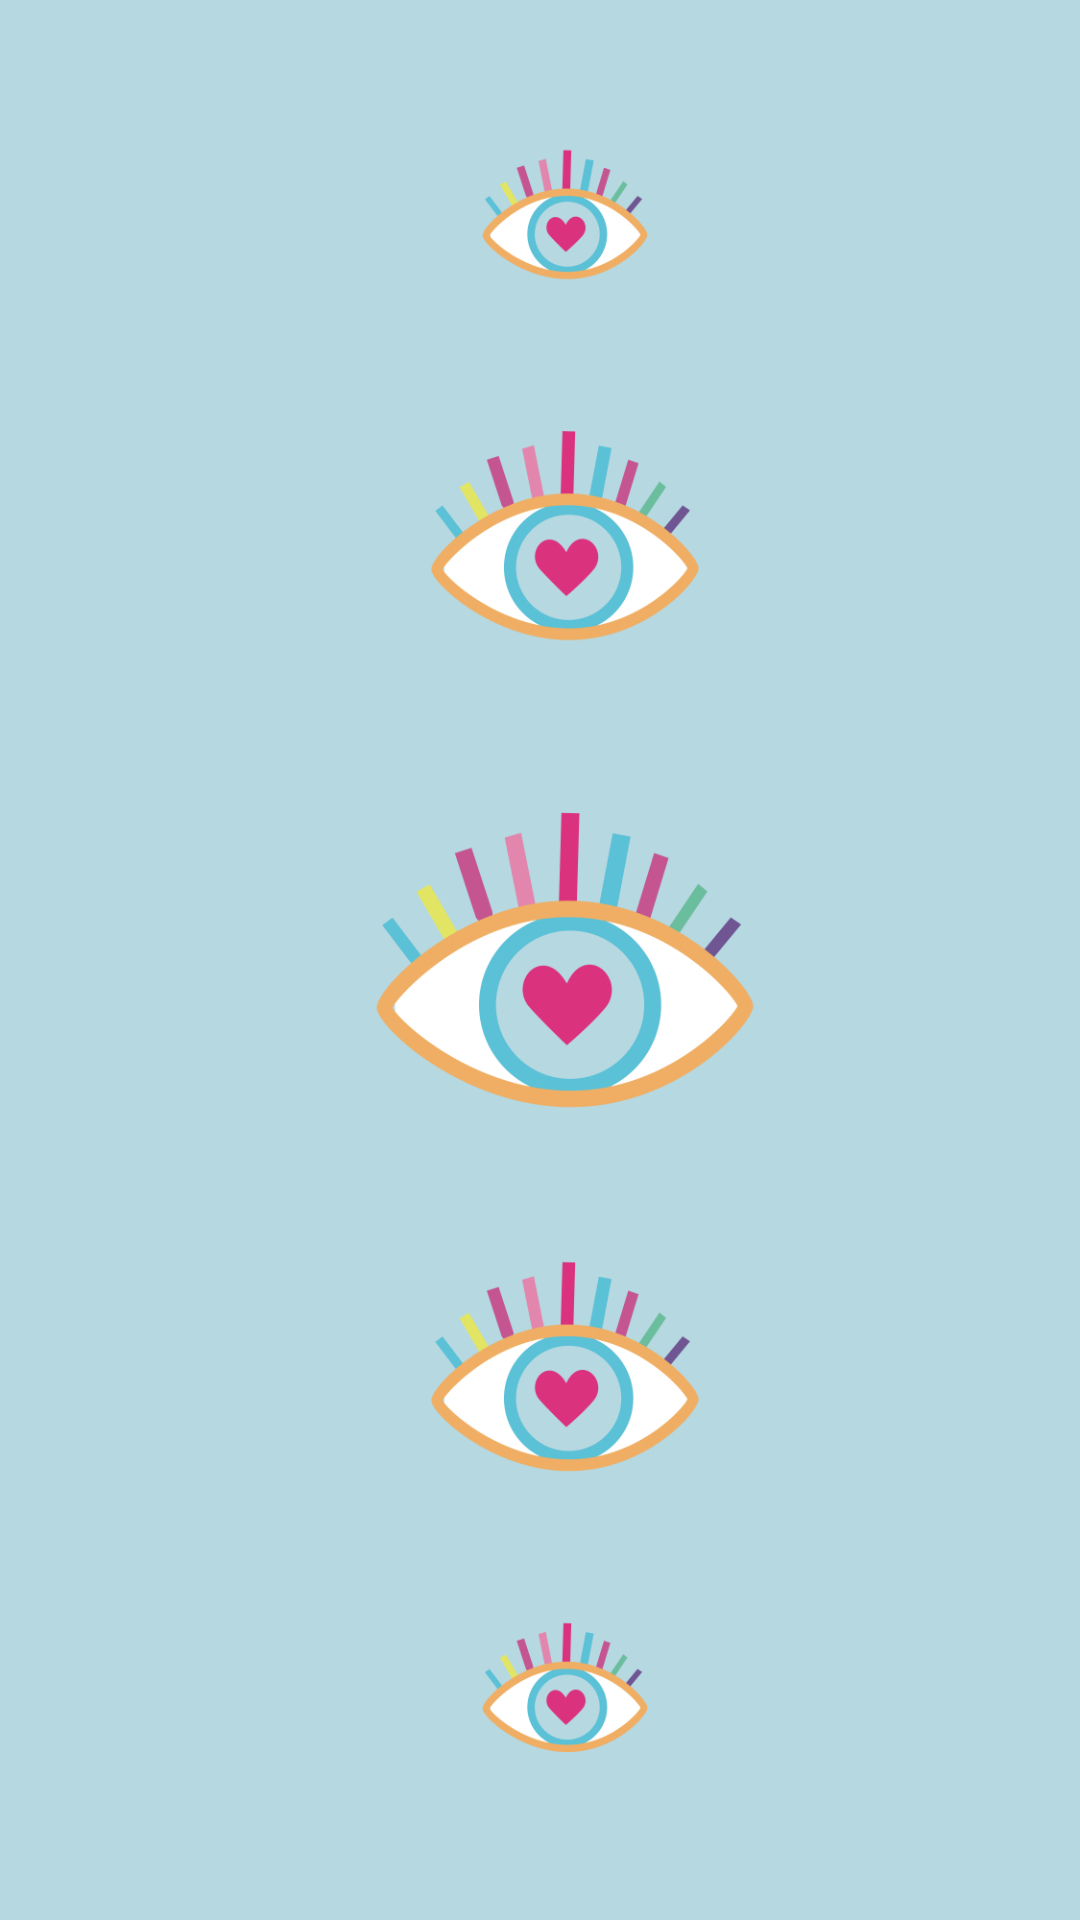 Summer phone wallpaper with eyes and hearts design on blue background